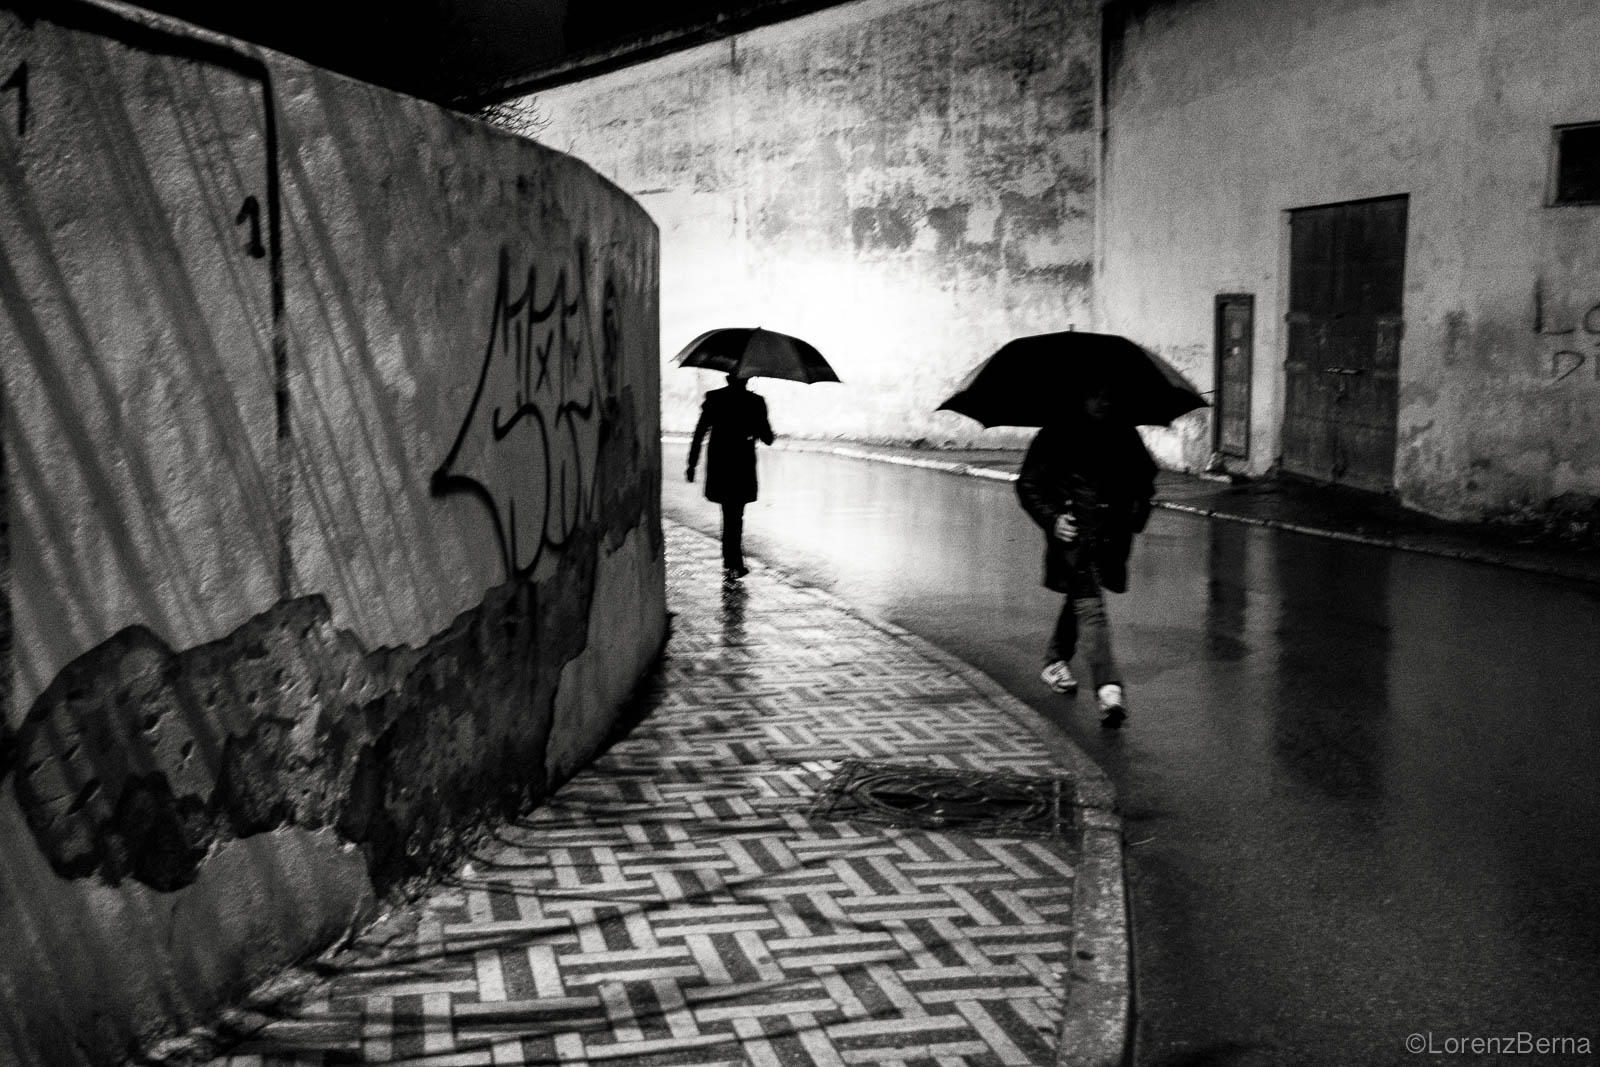 Fez street photography under the rain of a winter night.